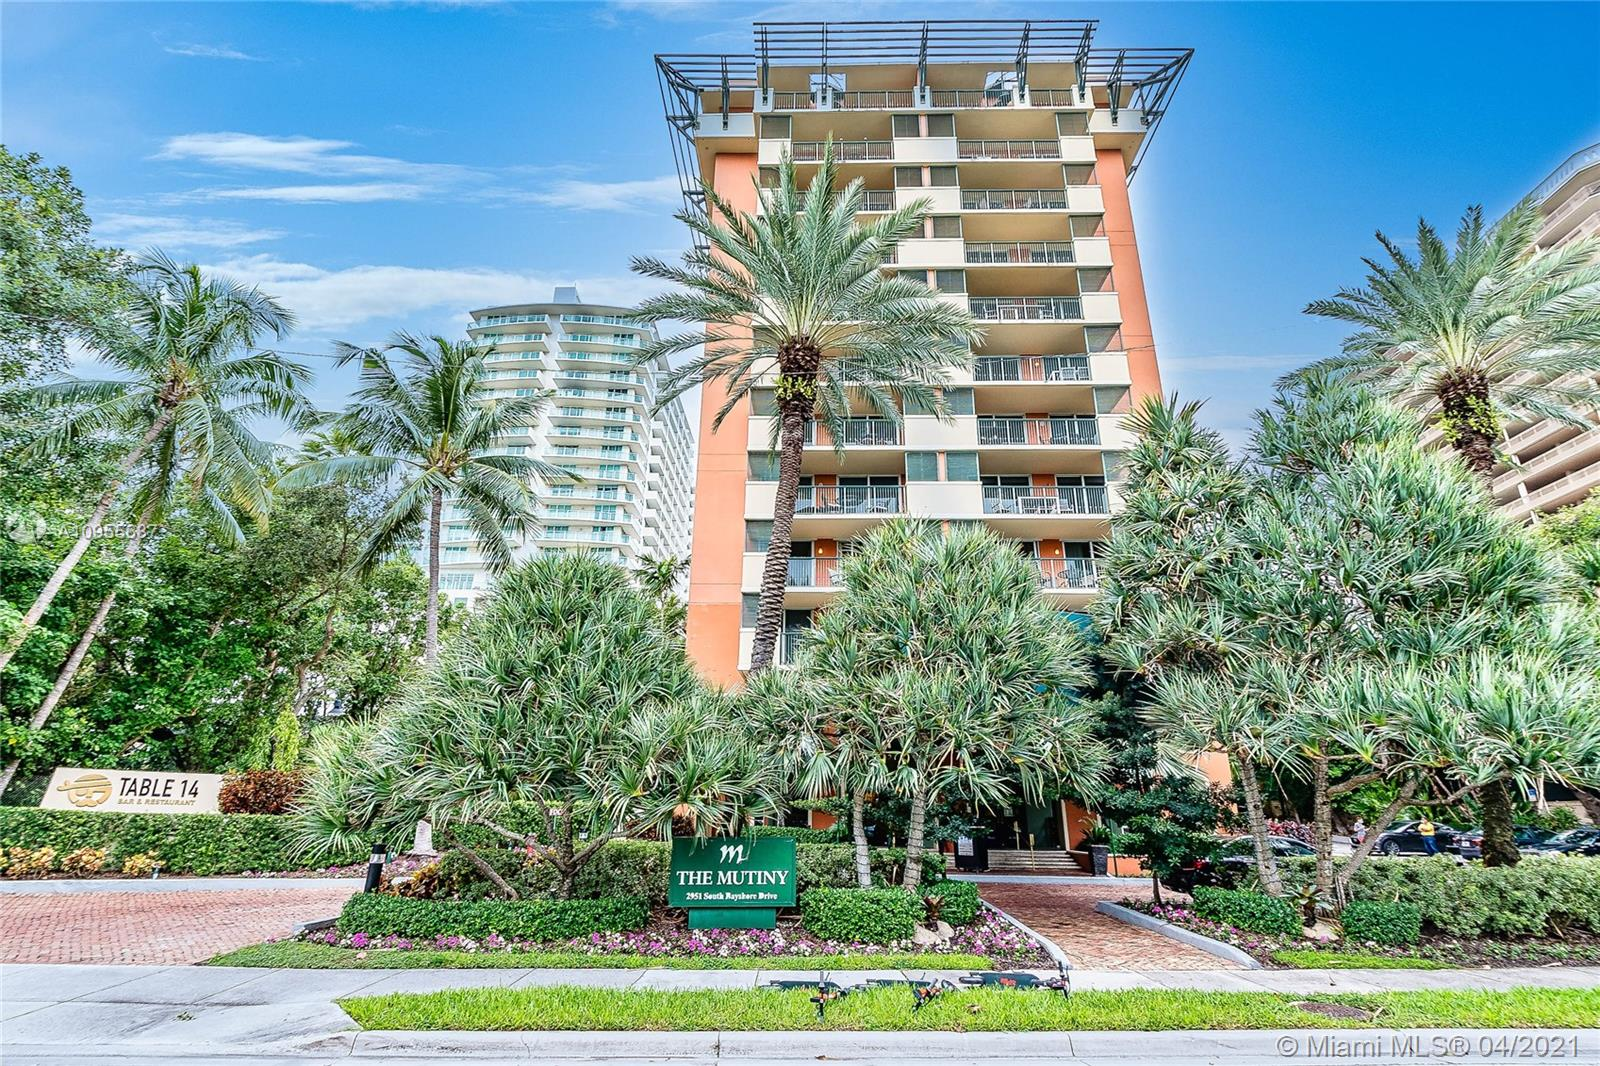 Beautifully renovated 1BR/1BA fully furnished unit in the iconic Mutiny Hotel, with incredible views of Biscayne Bay and Bayside Park. Perfect to owner occupy or for investors to join the on site hotel rental program for immediate income or Airbnb/VRBO.  Unit is currently in the hotel program and previous year's income is available upon request. The Mutiny features an onsite restaurant and bar with room service, a gym with sauna and steam room, 24 hour security and front desk, concierge, complimentary valet or self parking, and much more. The Mutiny is just steps away from the heart of Coconut Grove, Coco-walk and all of the shops, restaurants, and night life.